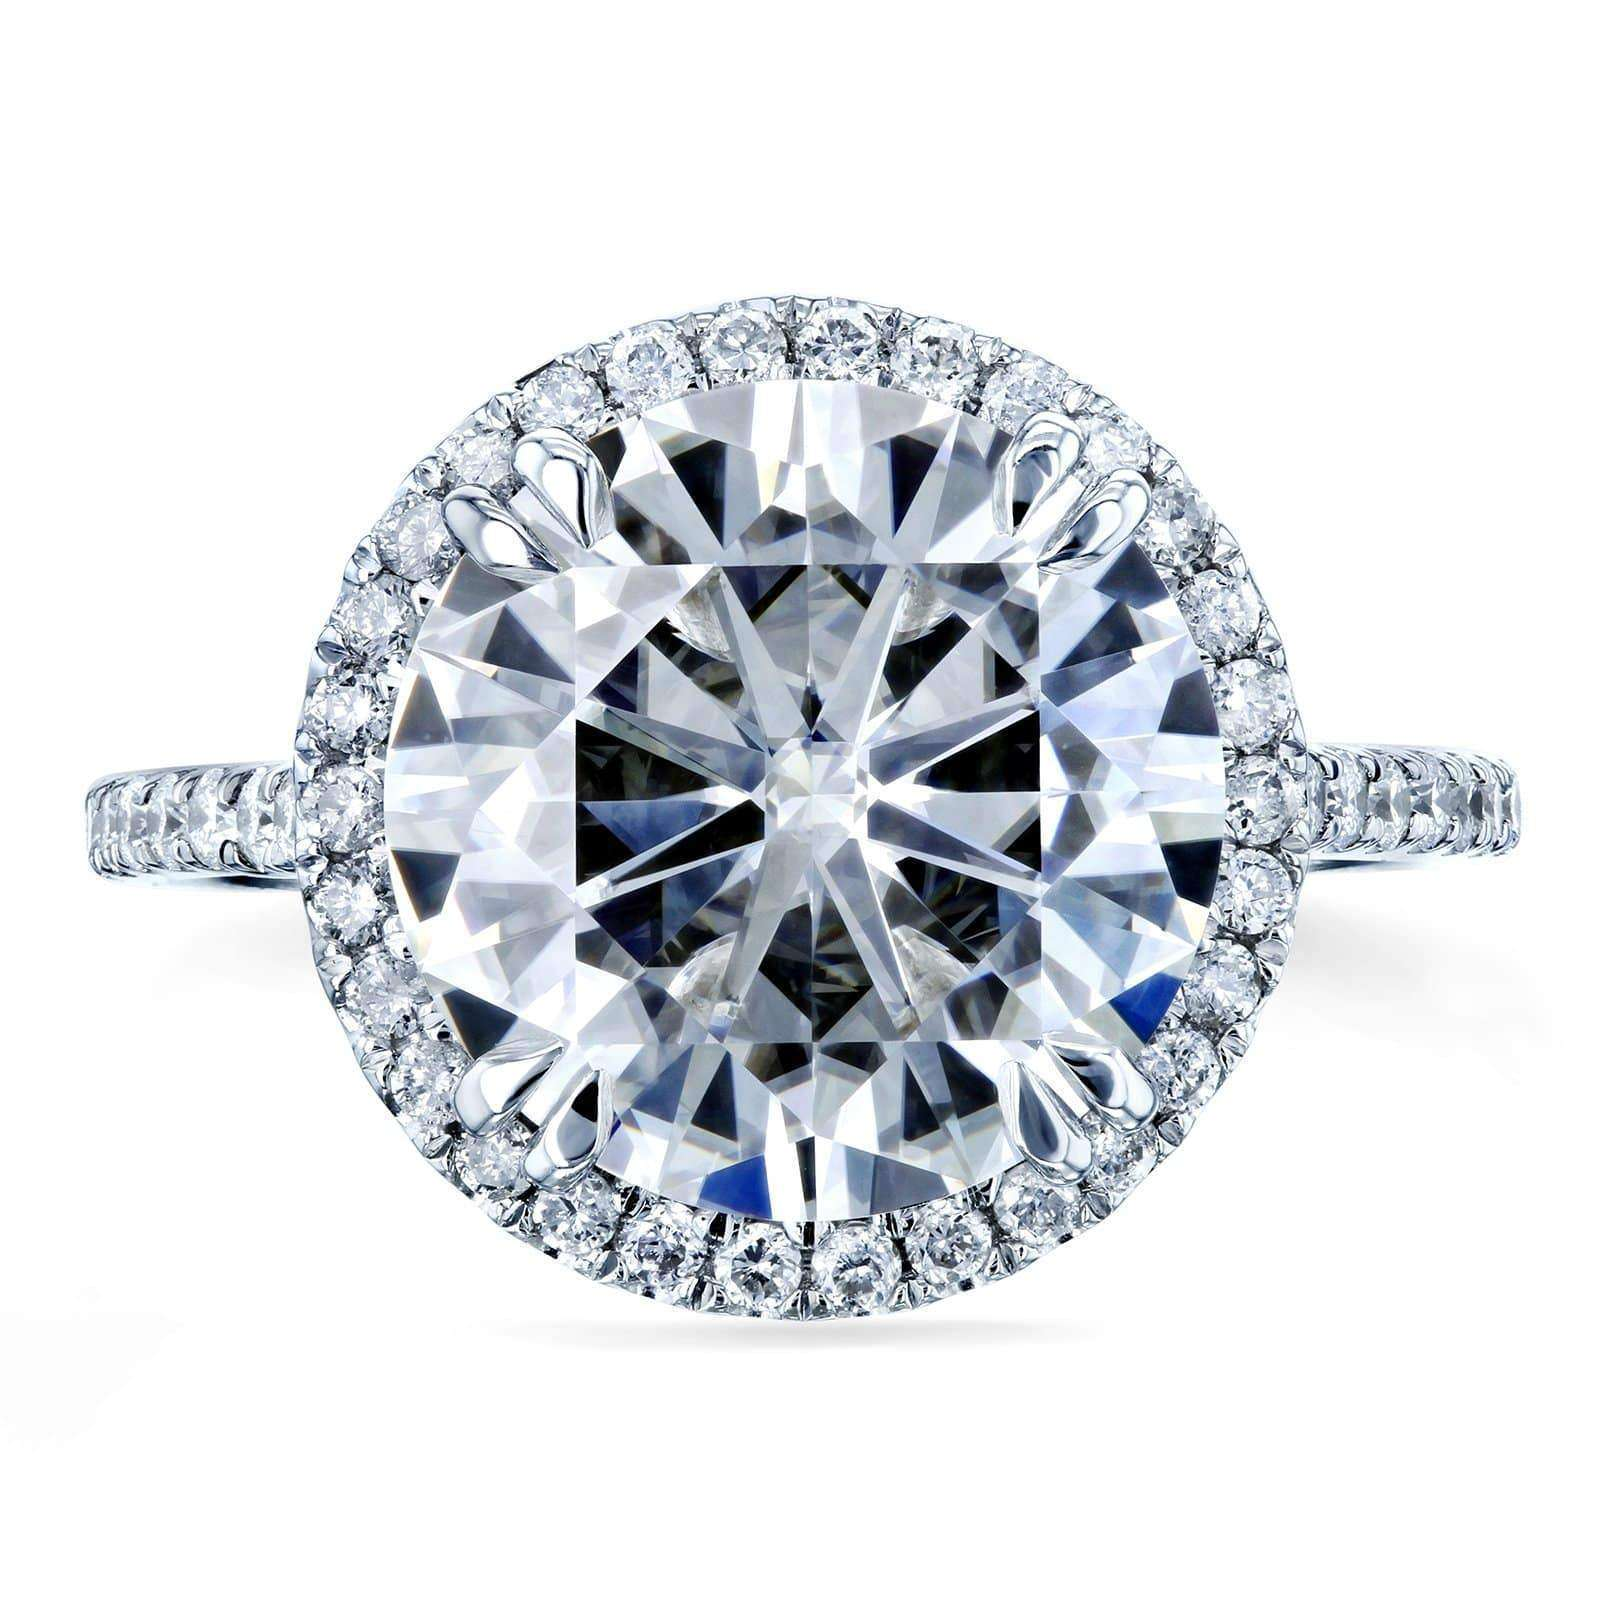 Promos Moissanite and Diamond Halo Engagement Ring 5 1/5 CTW in 14k White Gold - 9.5